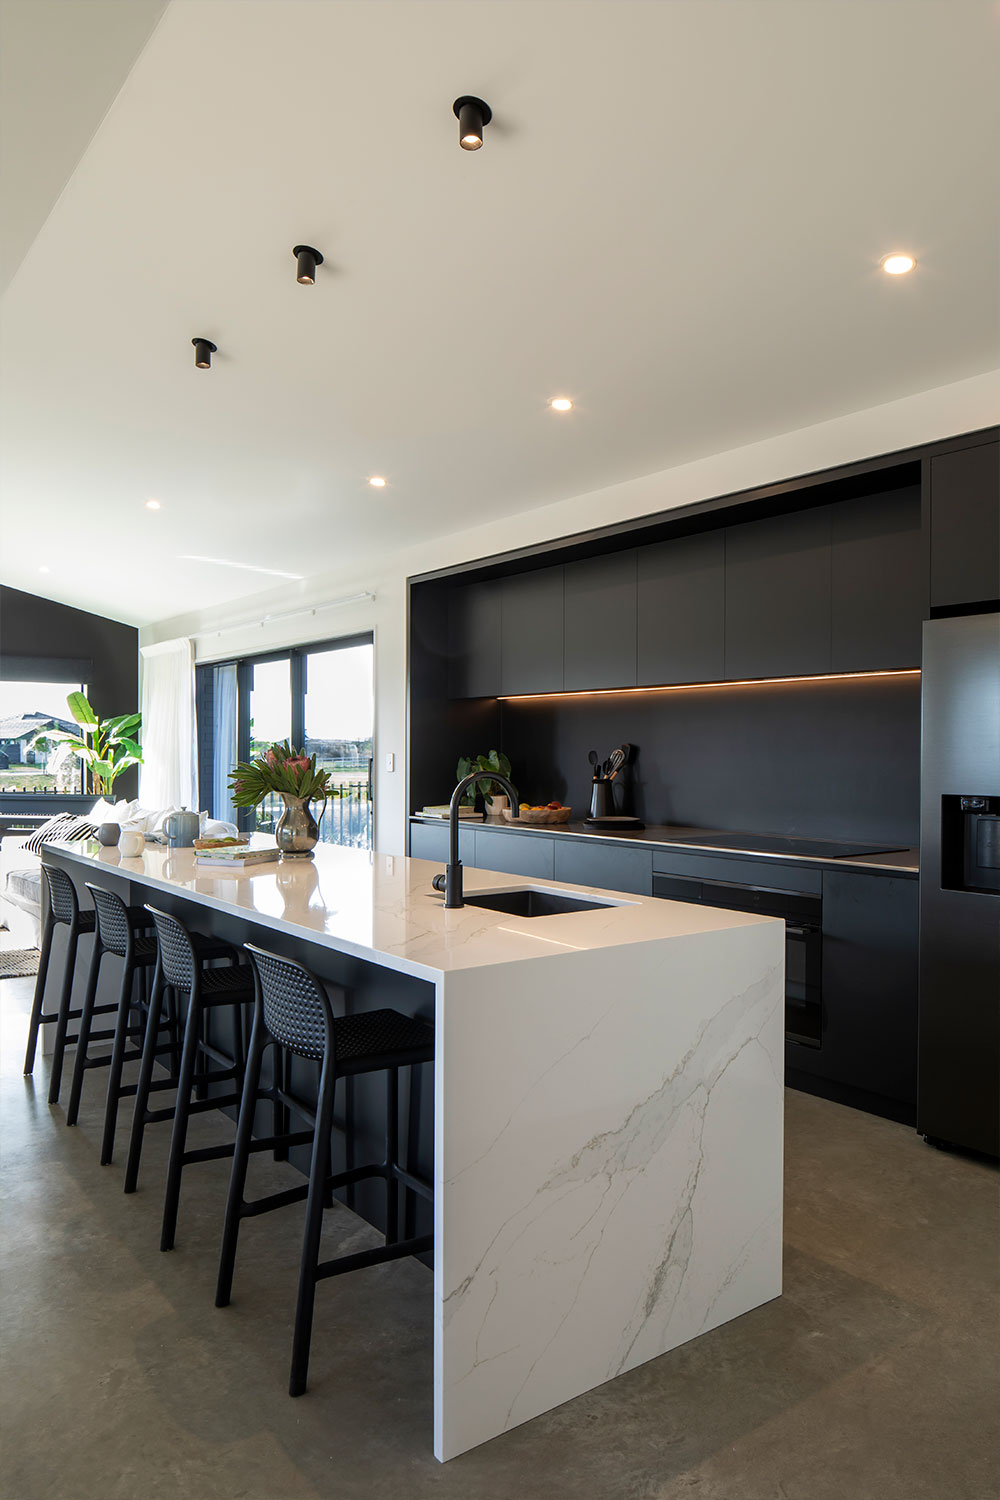 https://www.benchmarkhomes.co.nz/wp-content/uploads/2021/06/Projects-Evans-7-1000-x-1500-High-Res.jpg